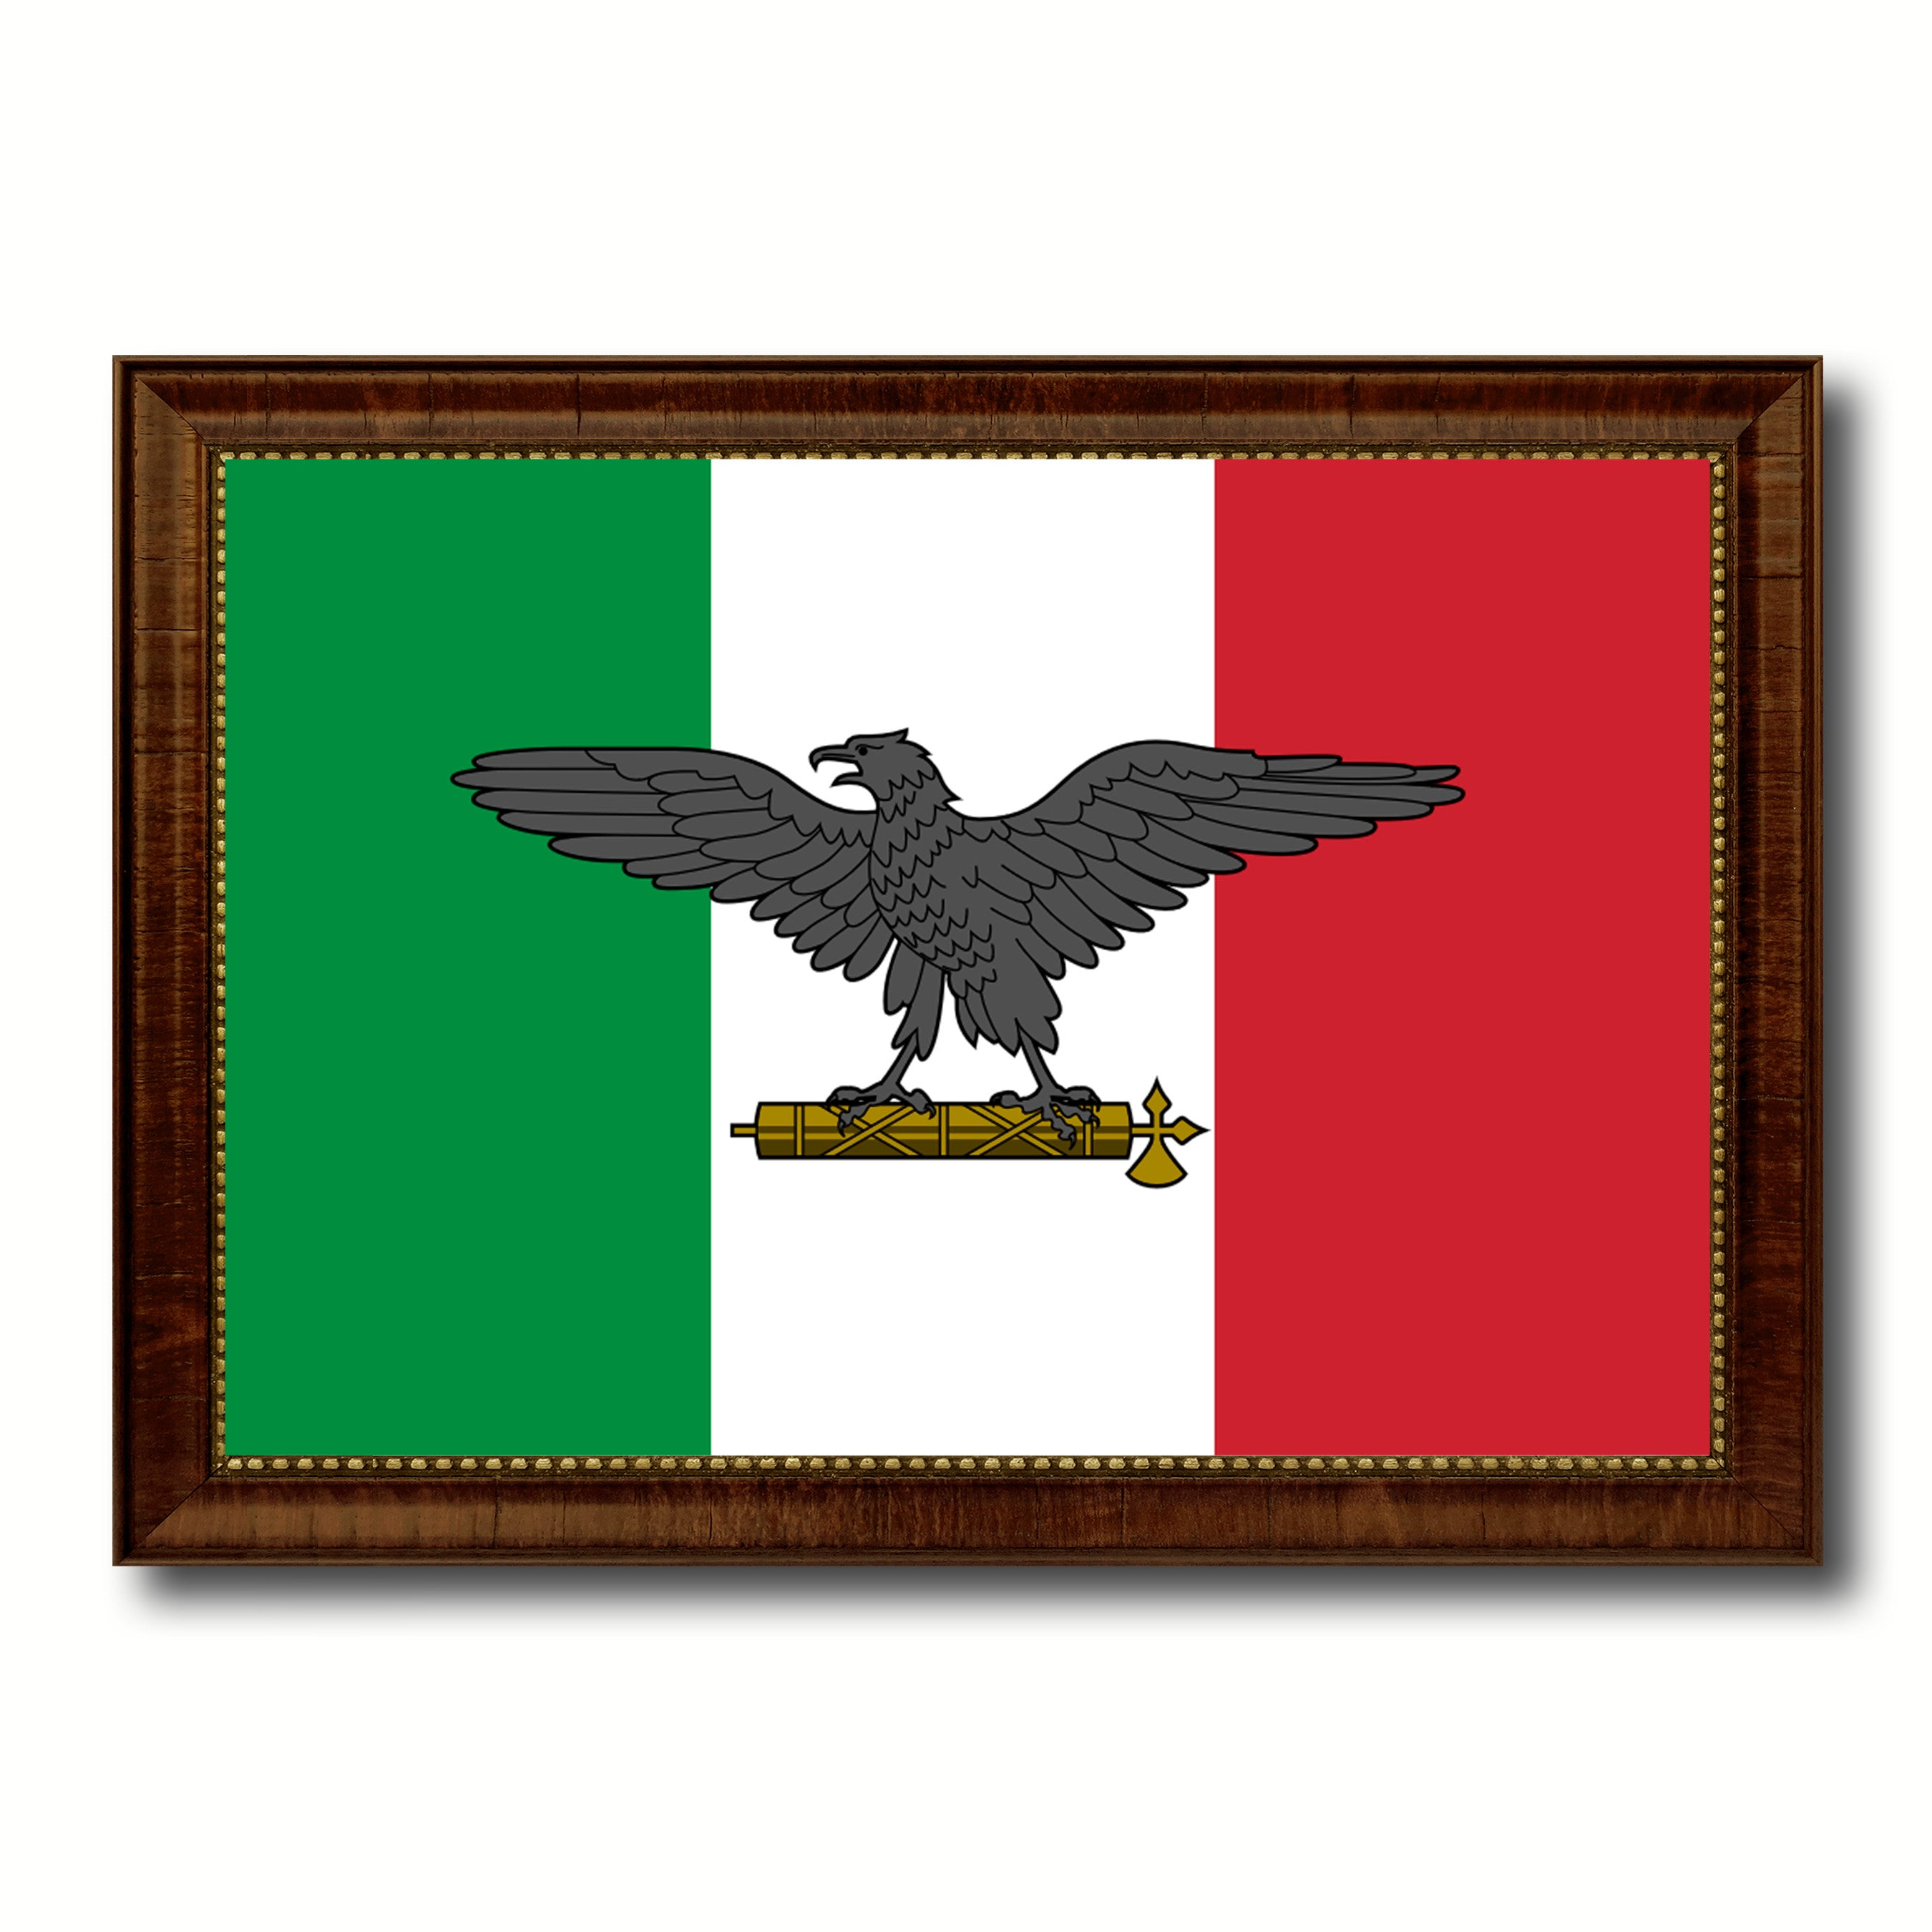 Italy War Eagle Italian Military Flag Patriotic Office Wall Home Decor Livingroom Interior Design Gift Ideas Decoration SpotColorArt